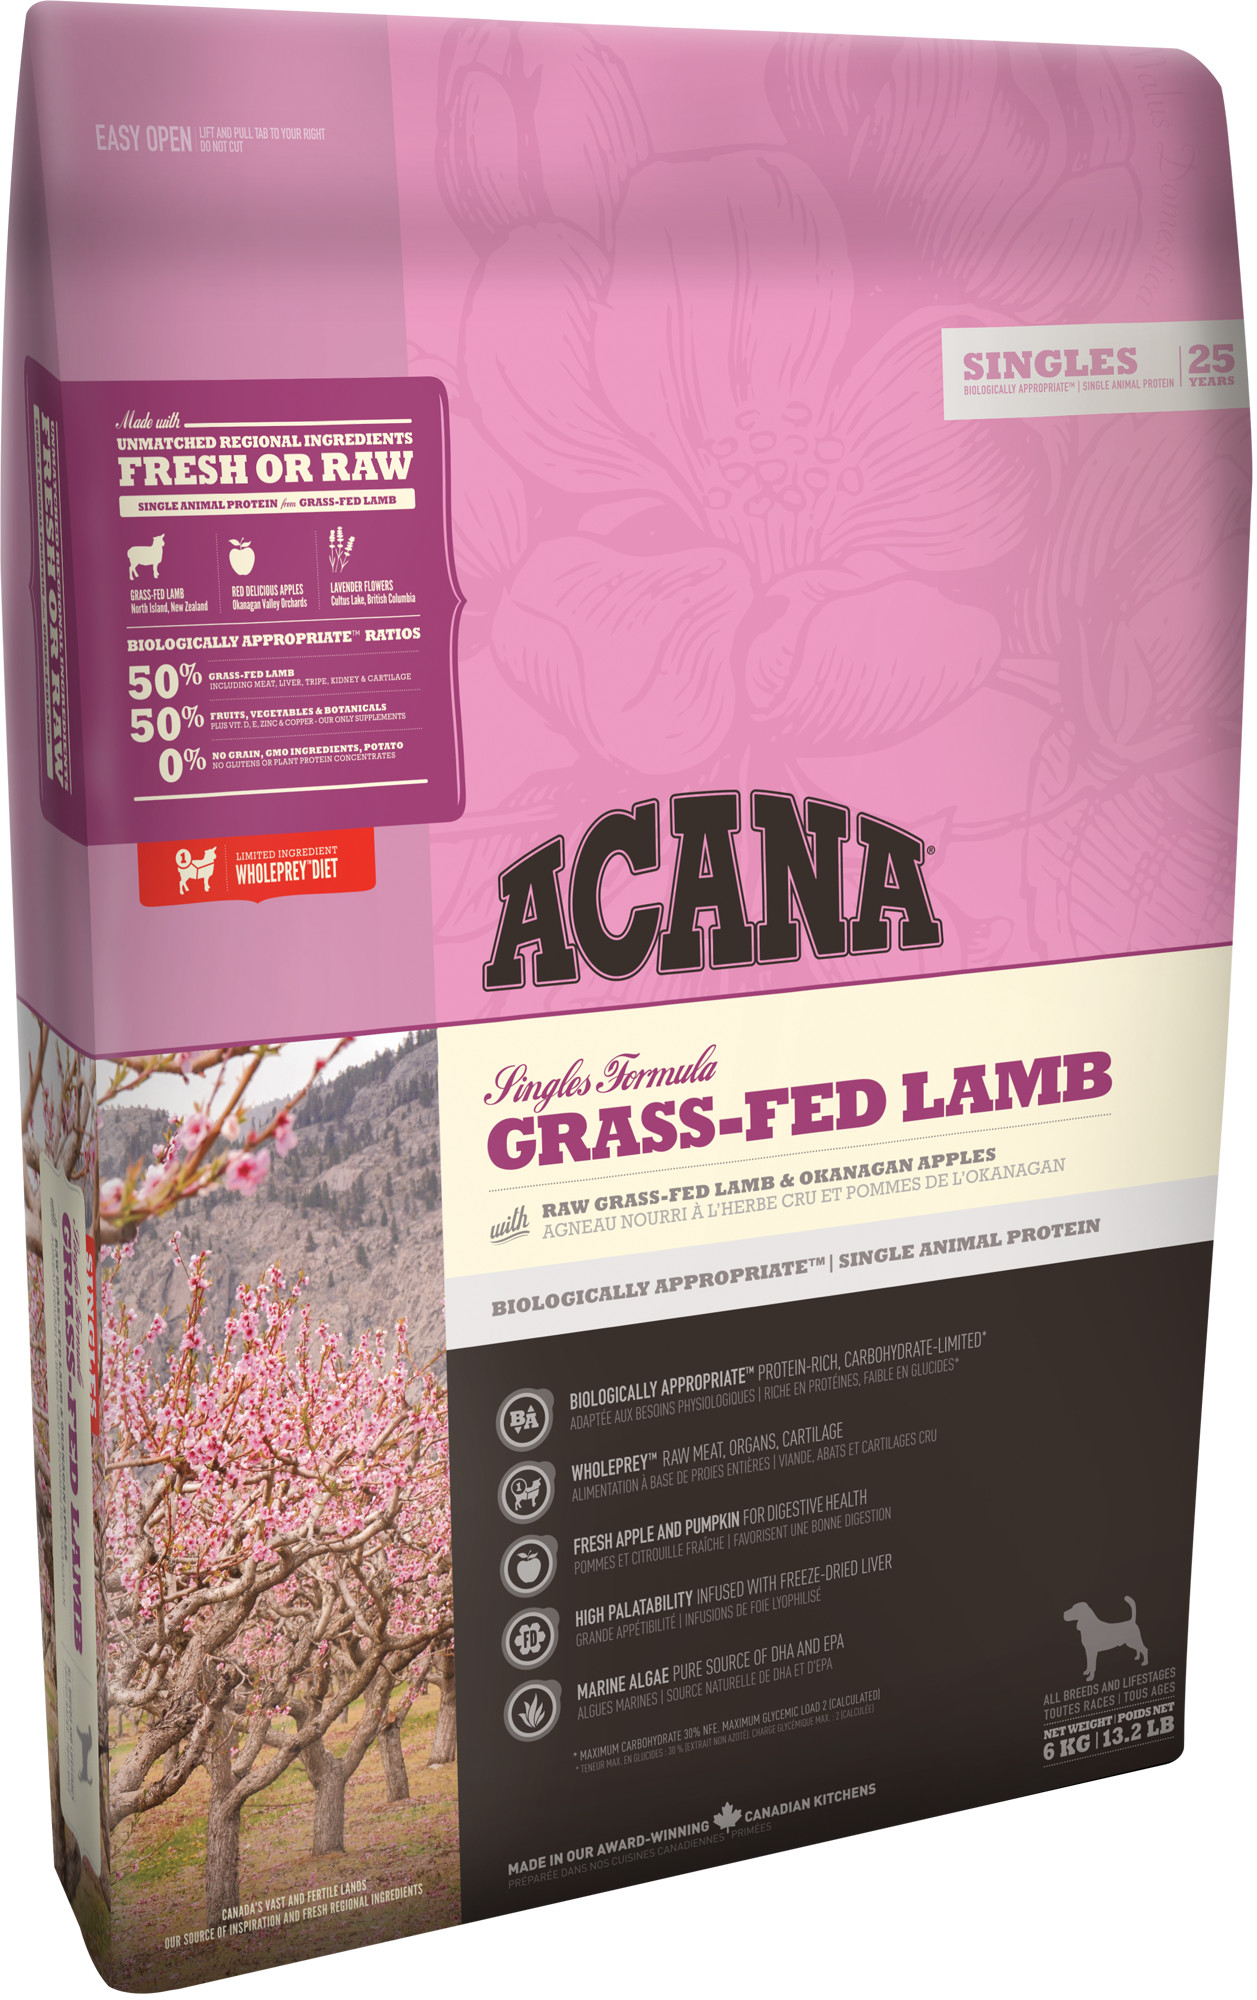 Acana GRASS-FED LAMB 2x17kg SINGLES NOVÁ+ DOPRAVA ZDARMA + 2x Dental Snacks!